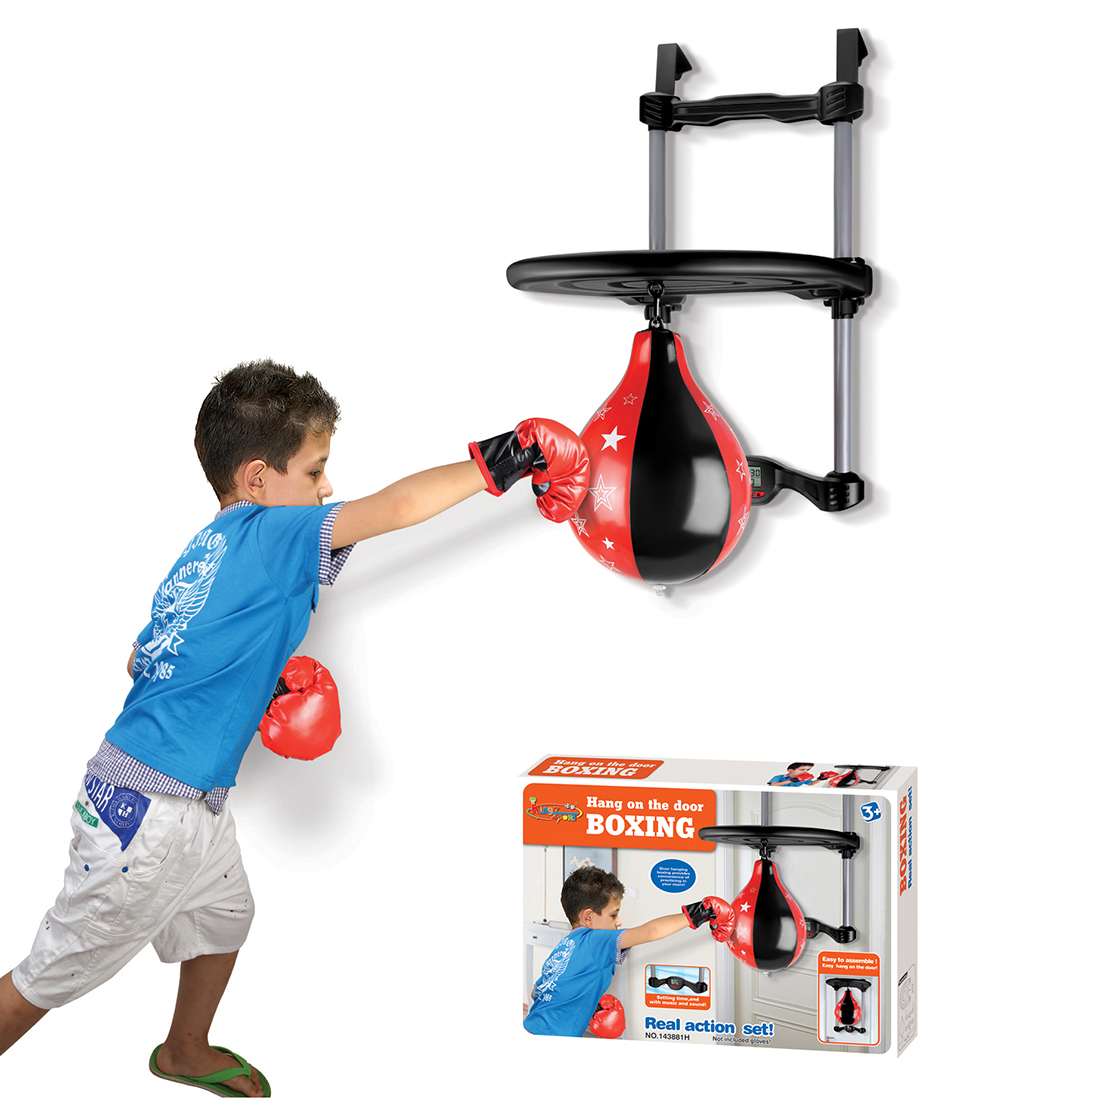 Rowsfire Pendant Type Children Outdoor Boxing Ball Toys For Sports DIY Body Improve Exercise For Kids Over 8 Years Old Hot Sale